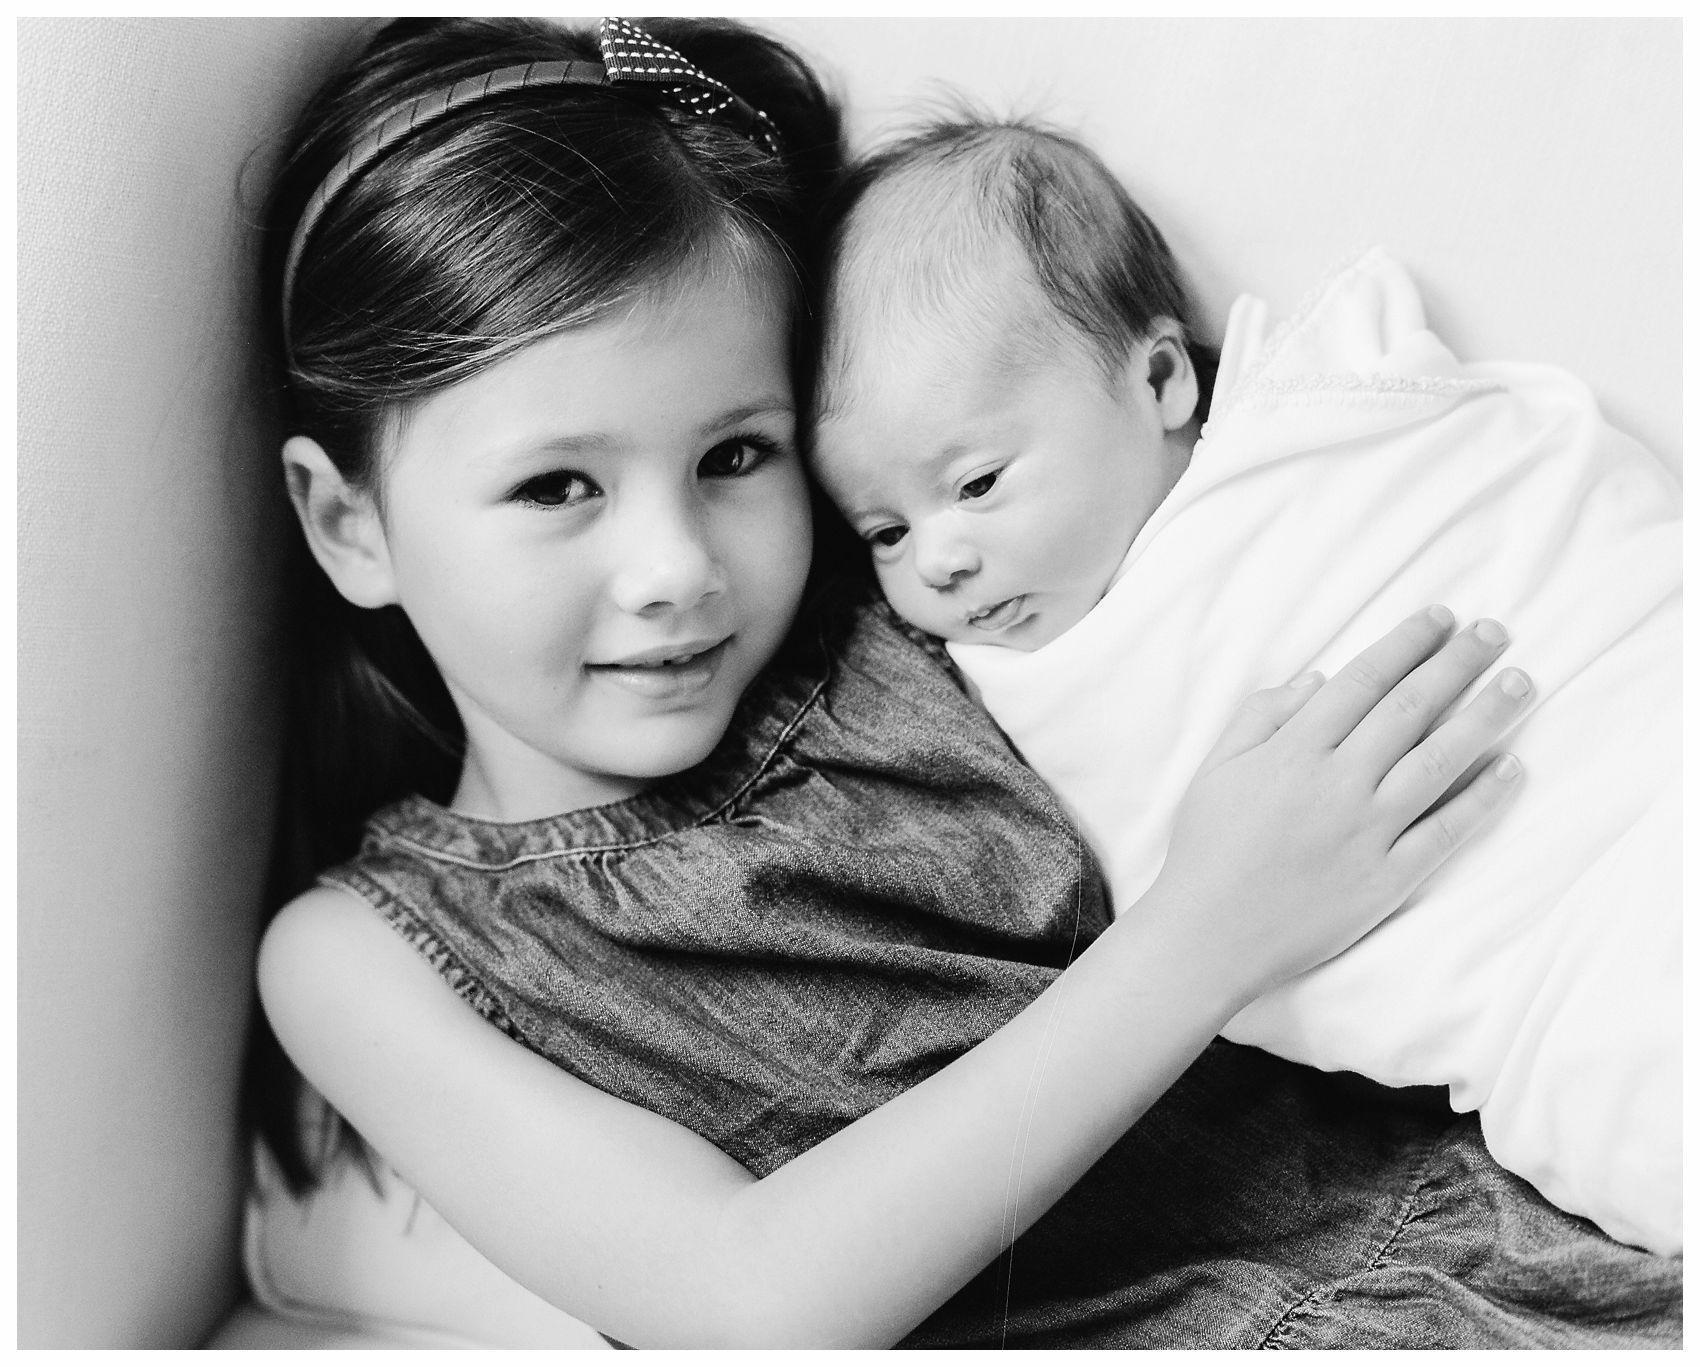 a portrait of a baby girl and her older sister is the best gift for the mother and grandmother in NYC